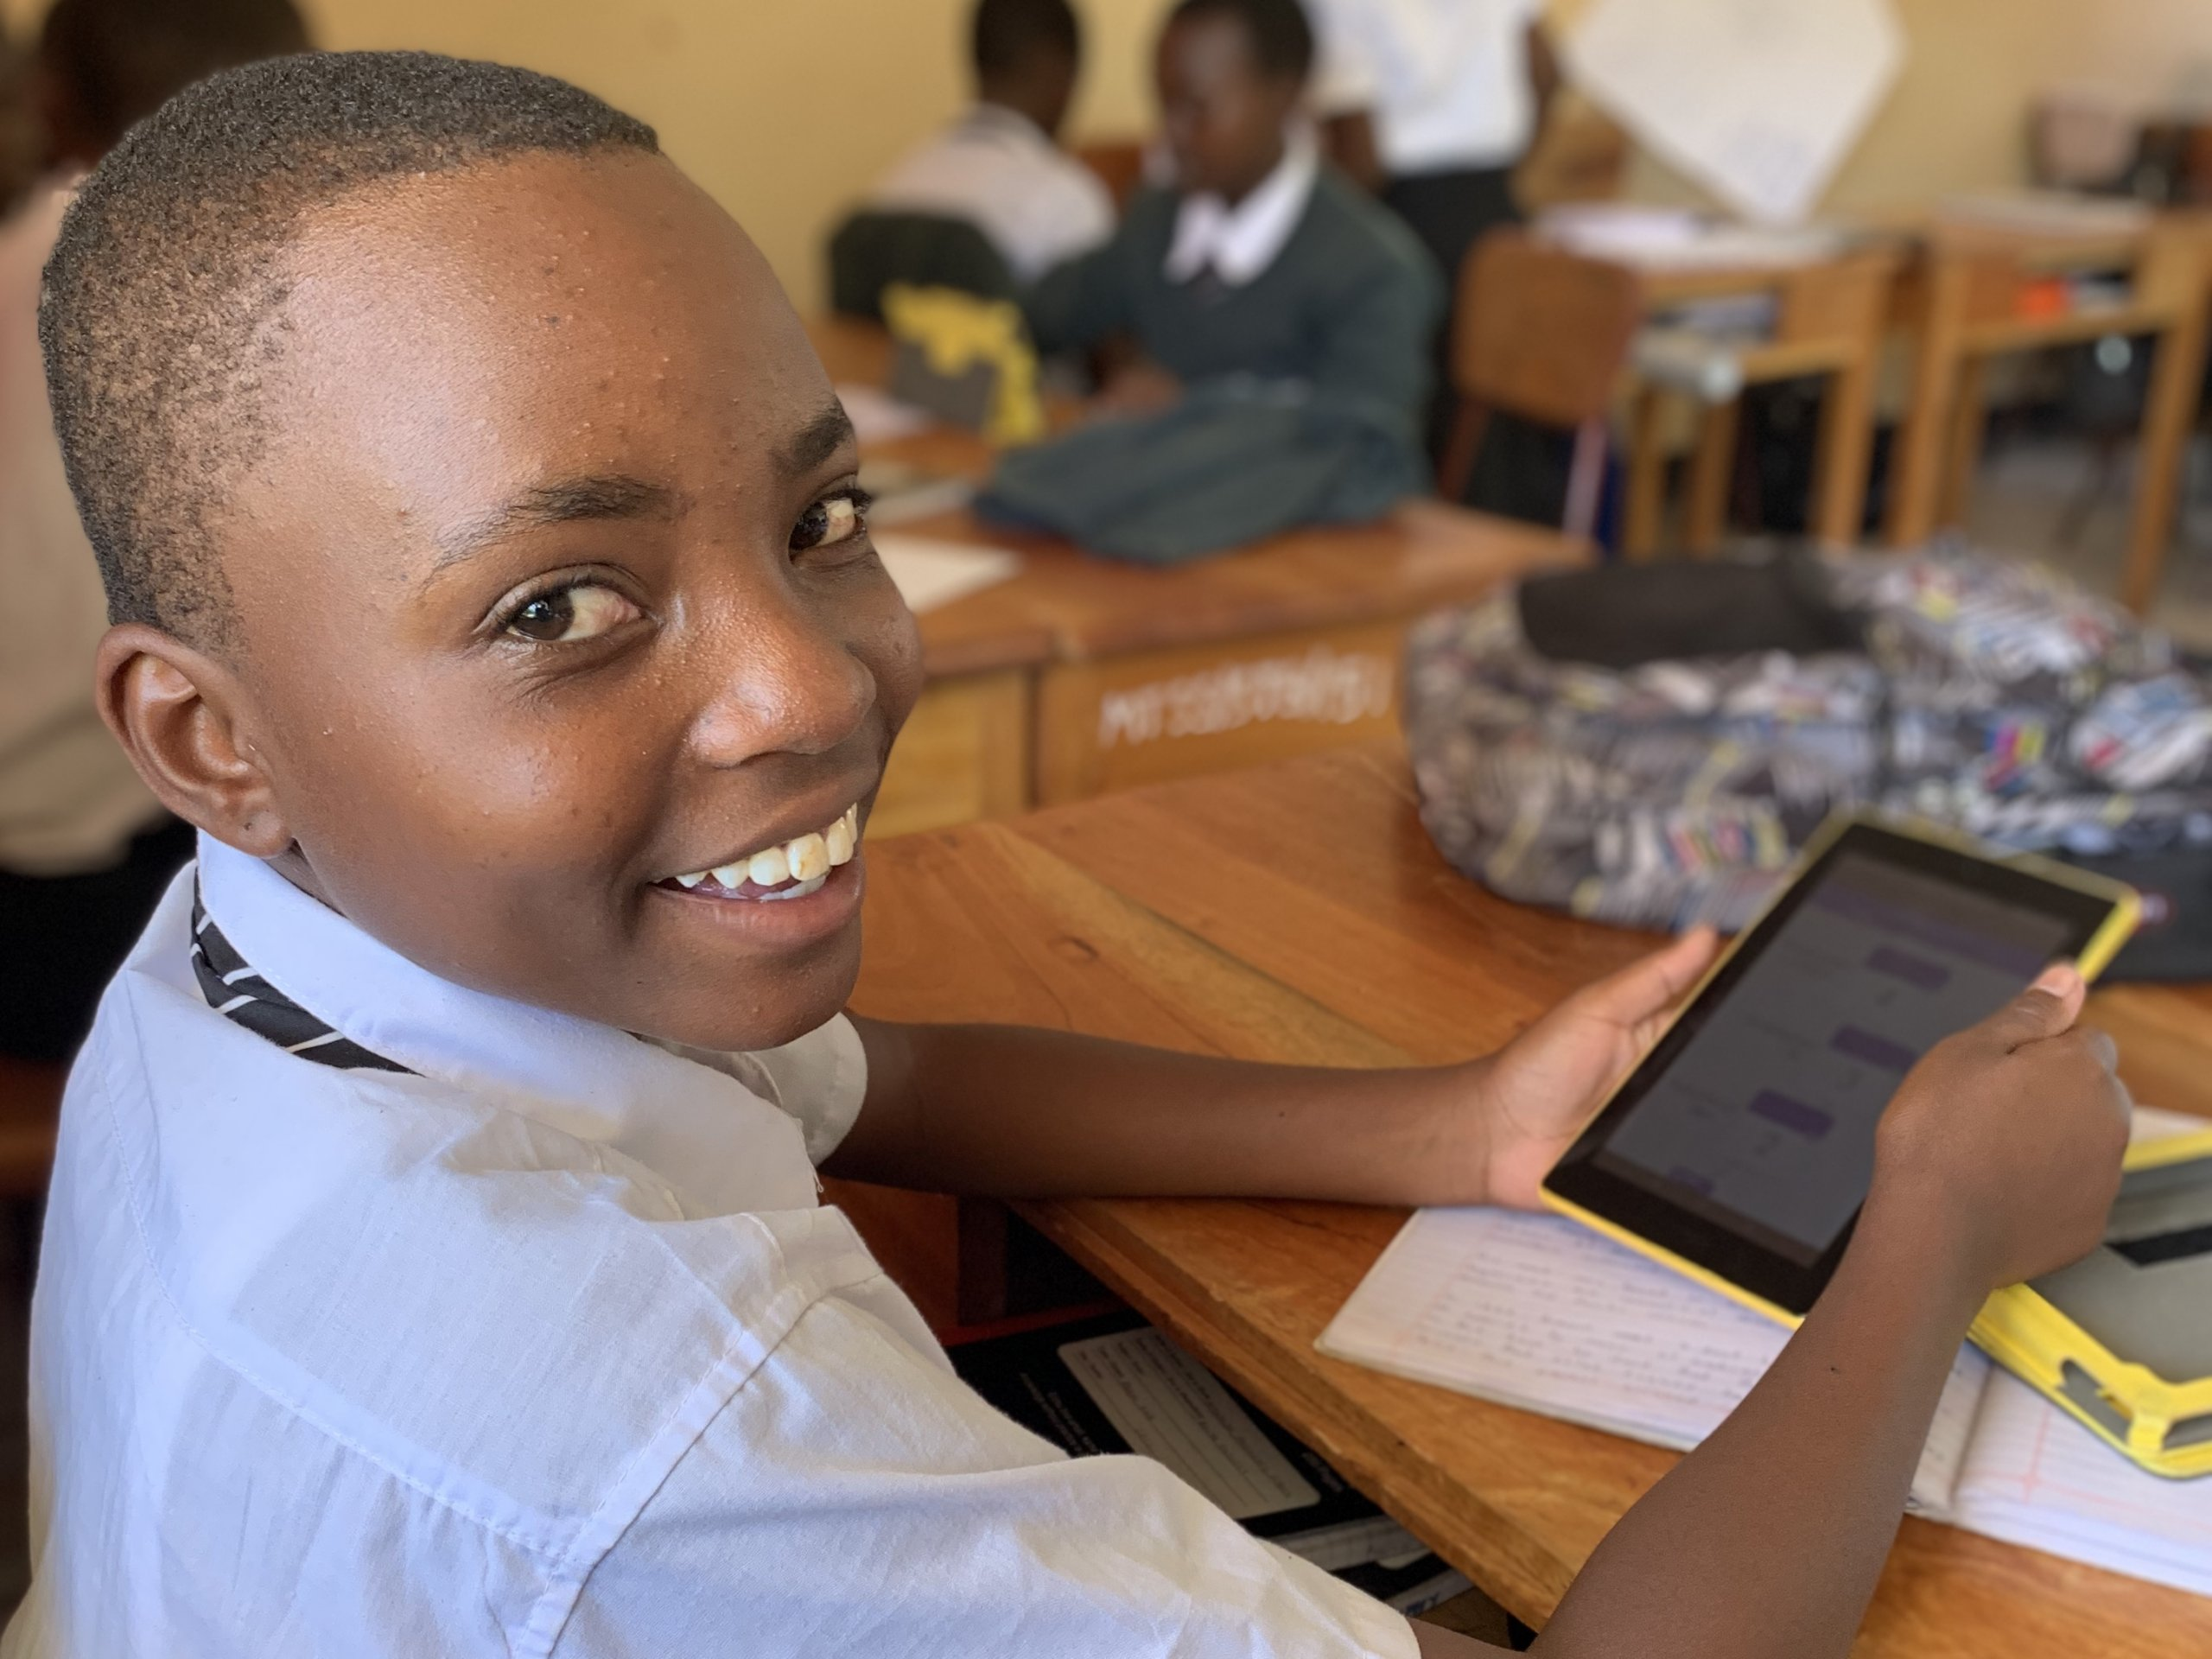 A student smiles brightly over his shoulder, while holding a tablet displaying the Quest app in his secondary school classroom in Tanzania.